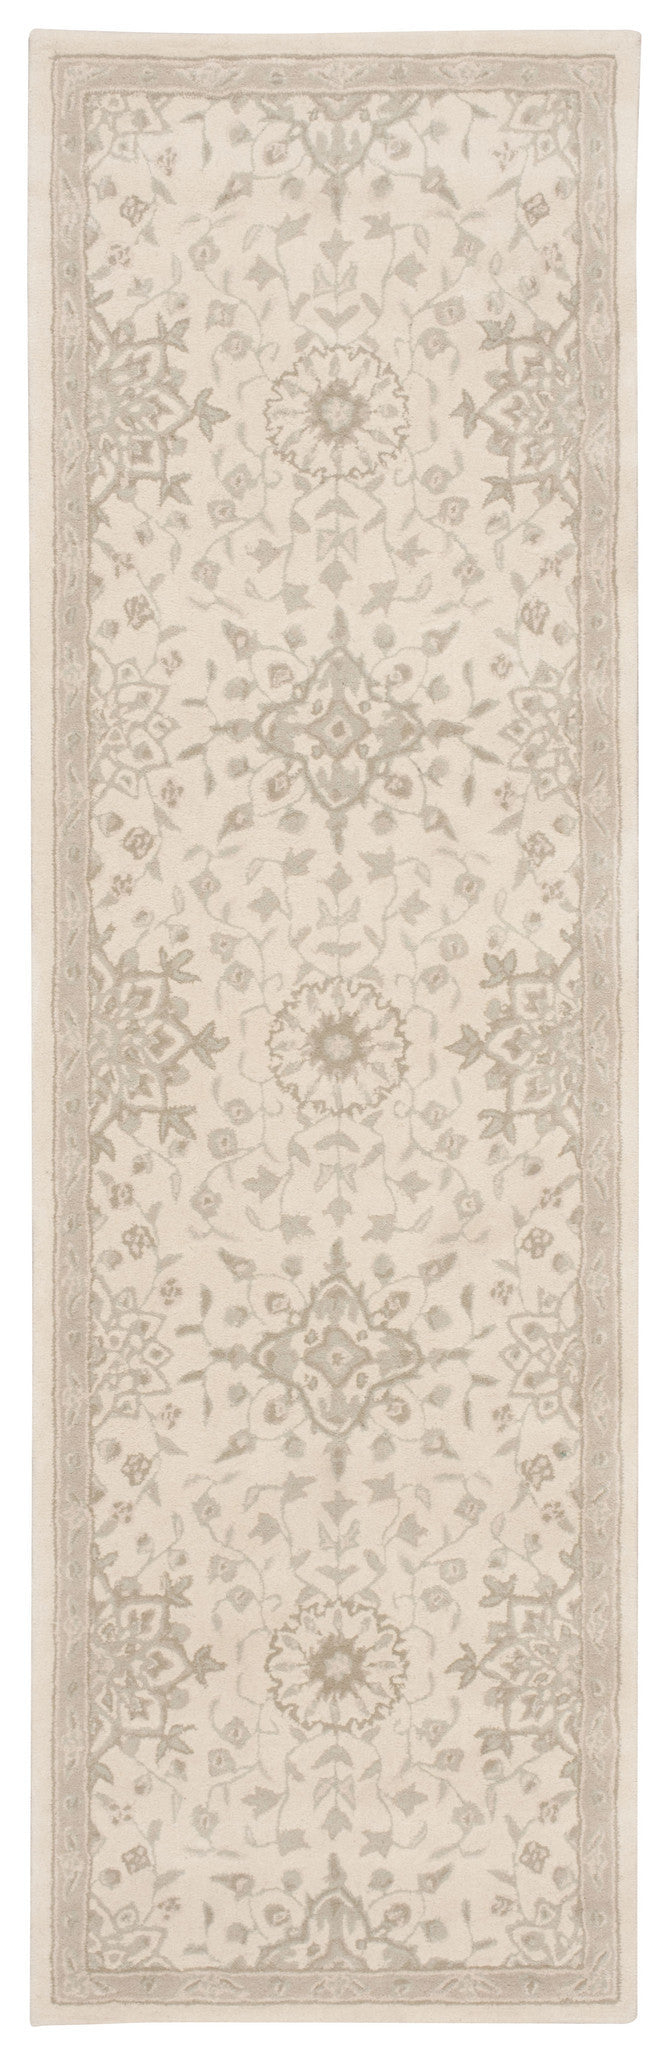 Kathy Ireland Royal Serenity St. James Bone Area Rug By Nourison SER02 BONE